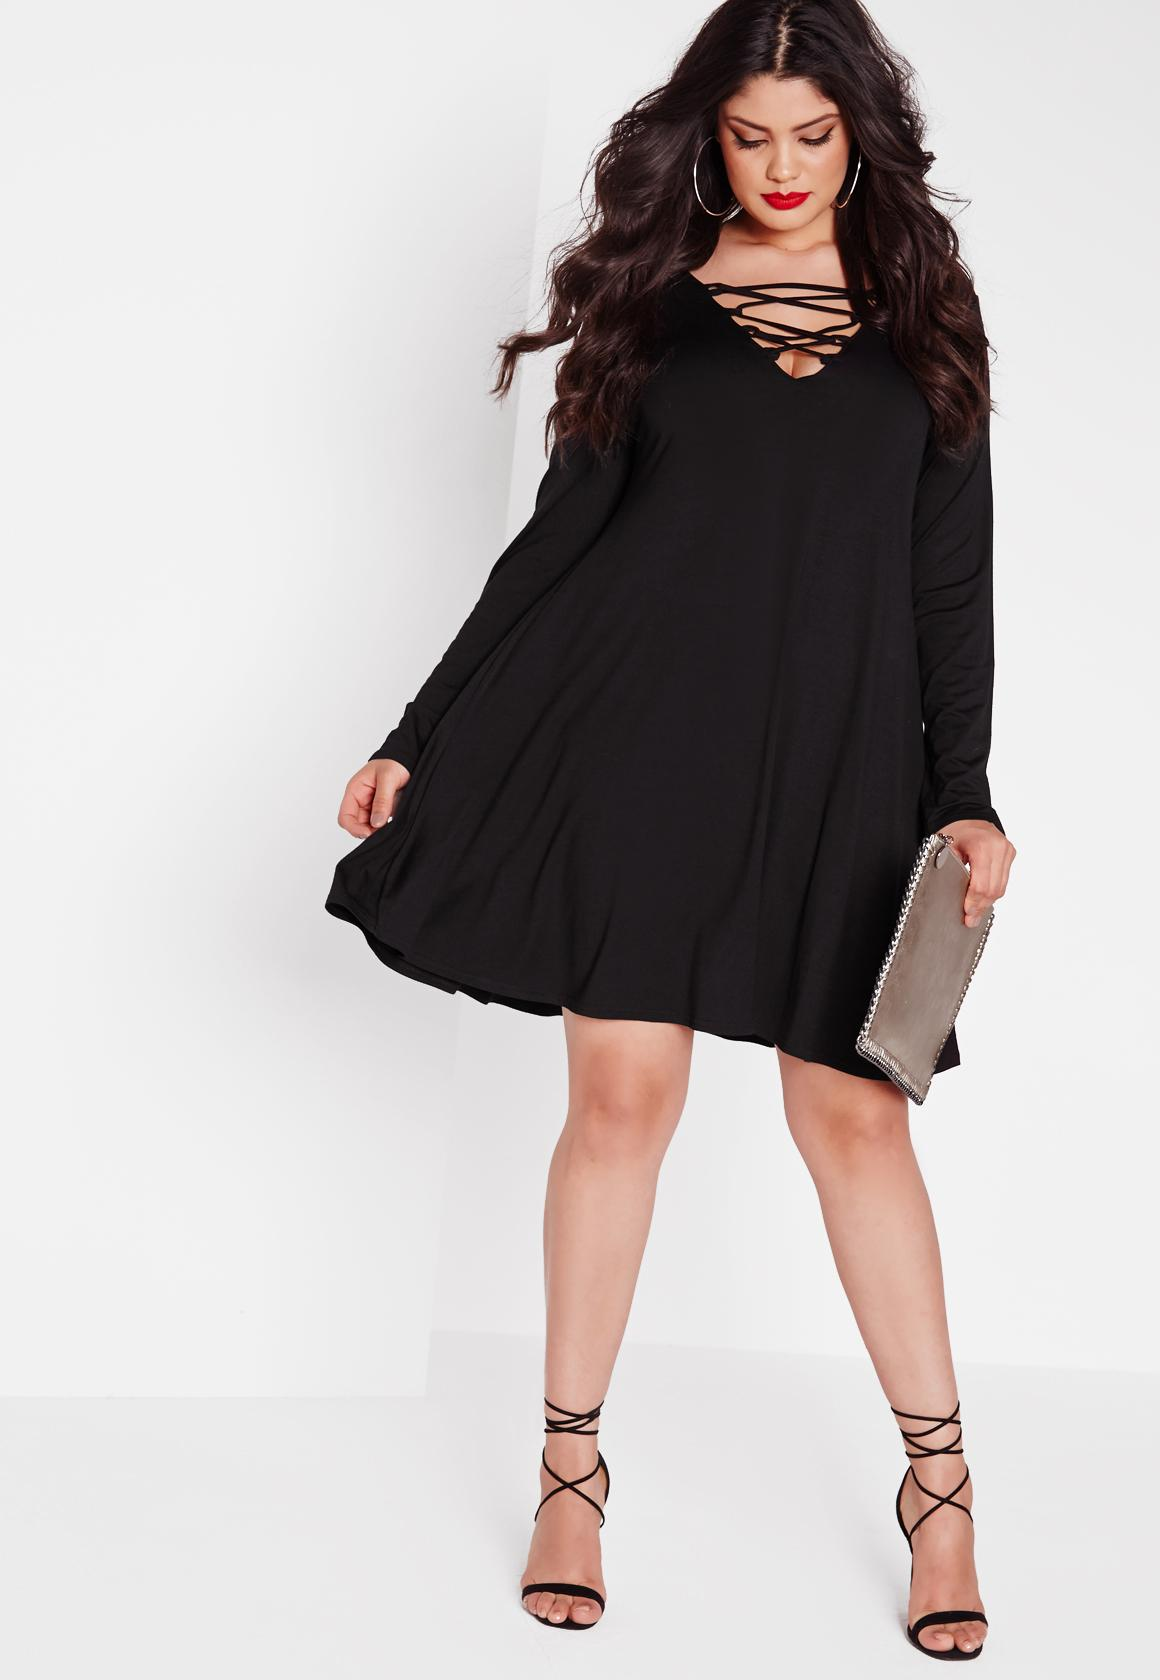 Plus size fashion for young adults 5